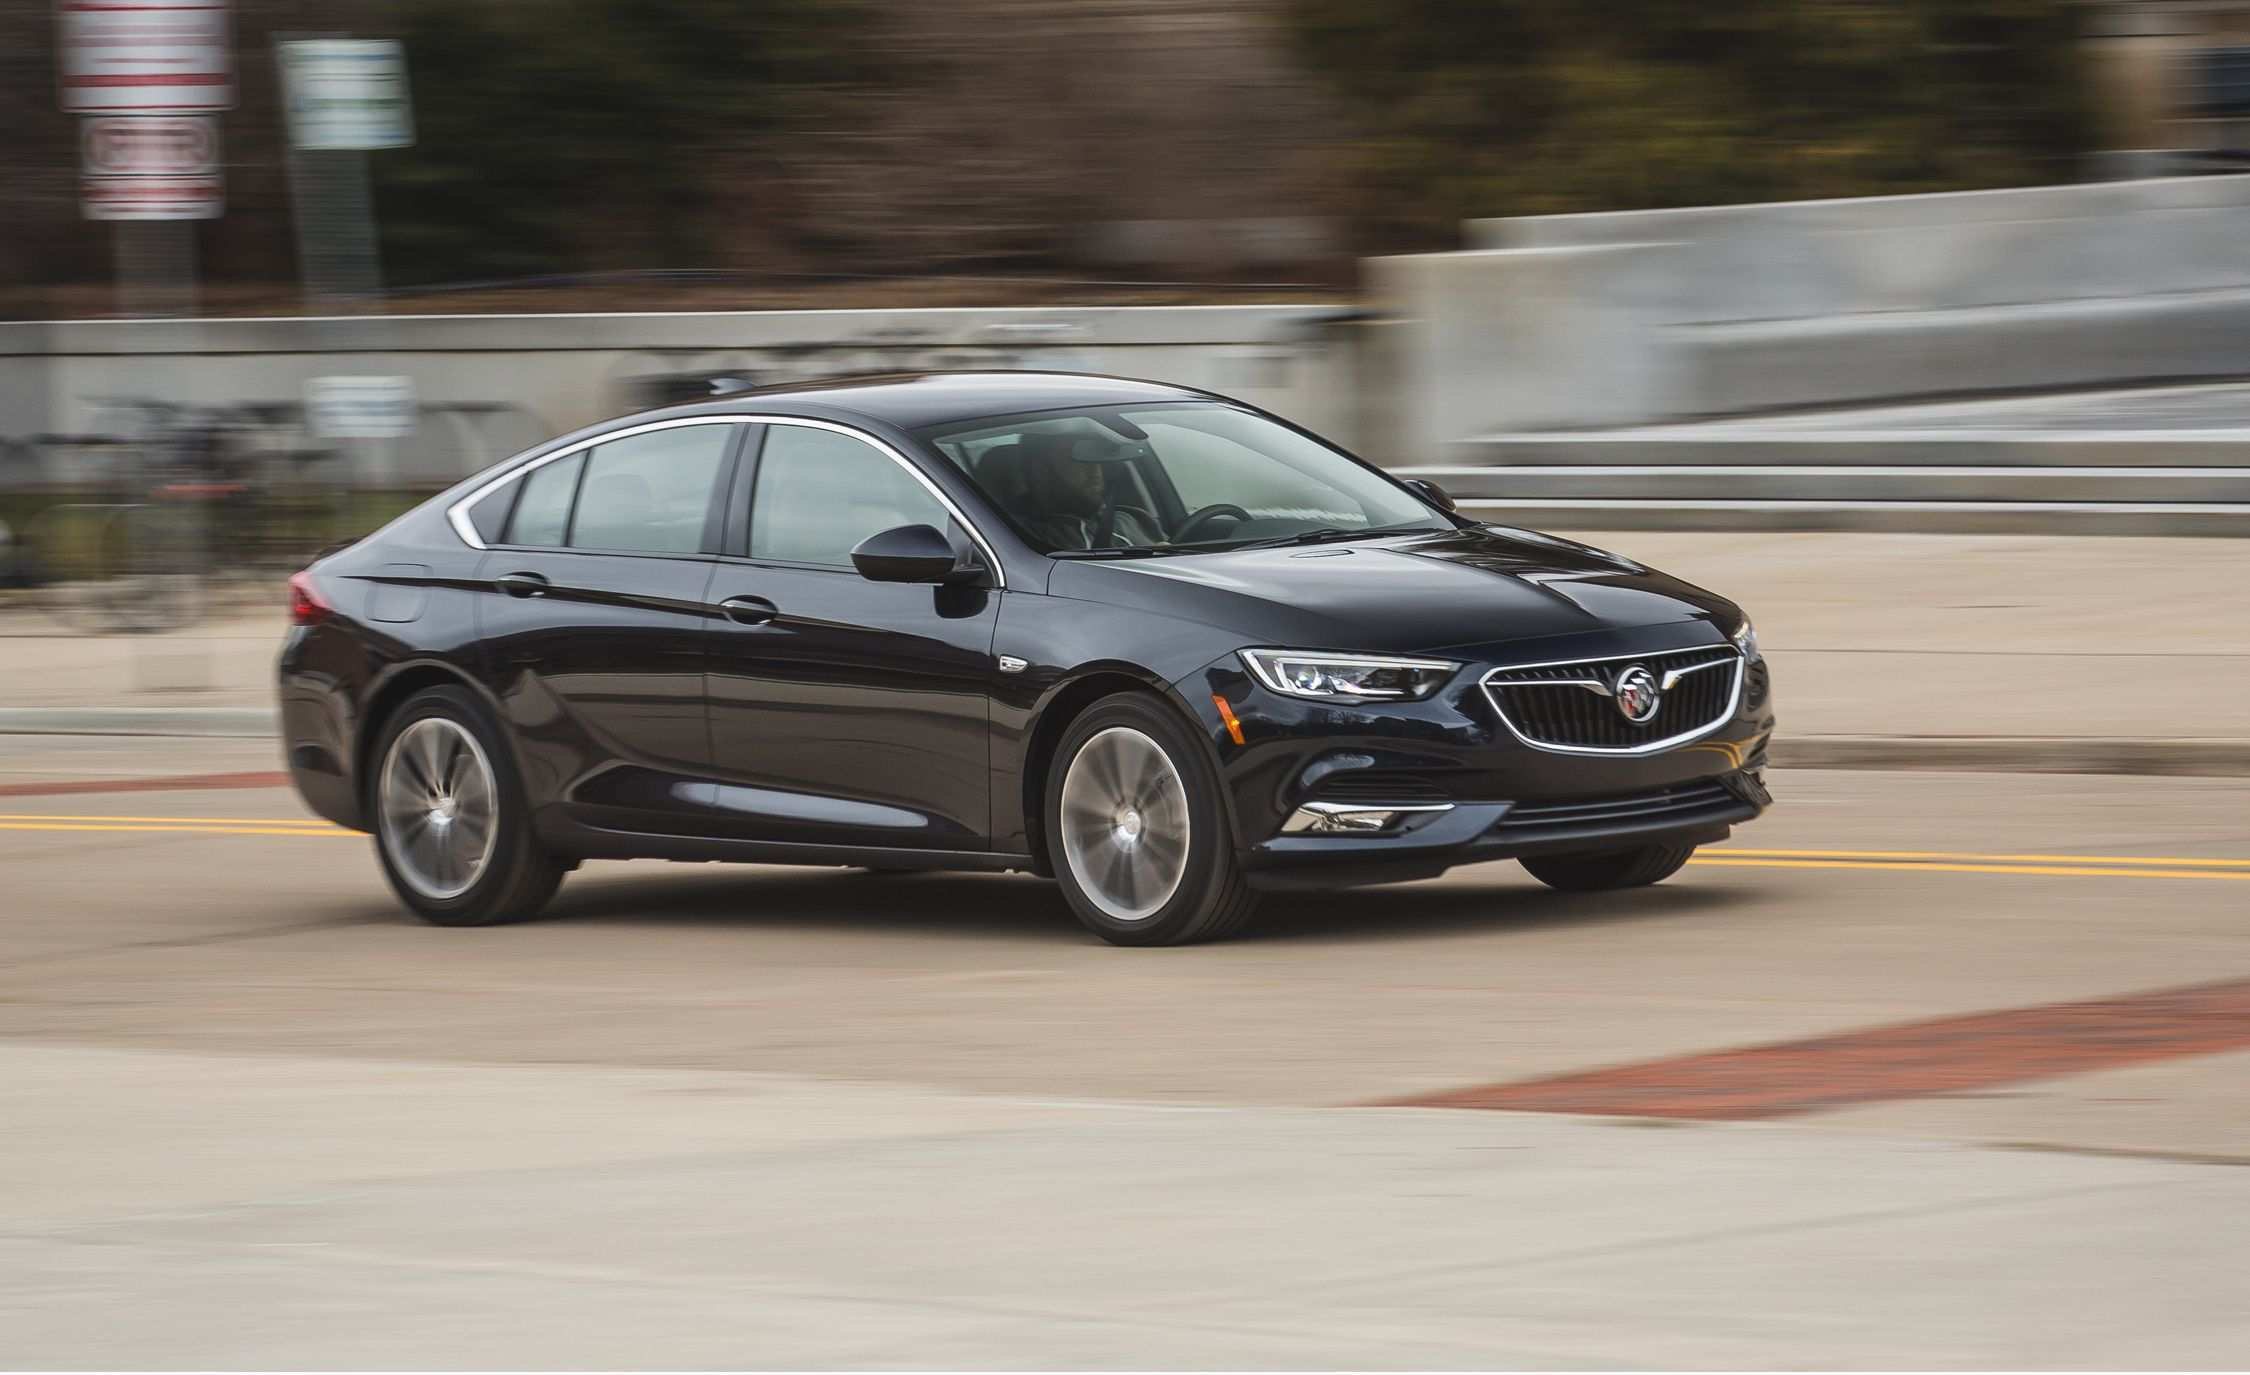 94 All New New 2019 Buick Regal Hybrid Price And Release Date Overview with New 2019 Buick Regal Hybrid Price And Release Date